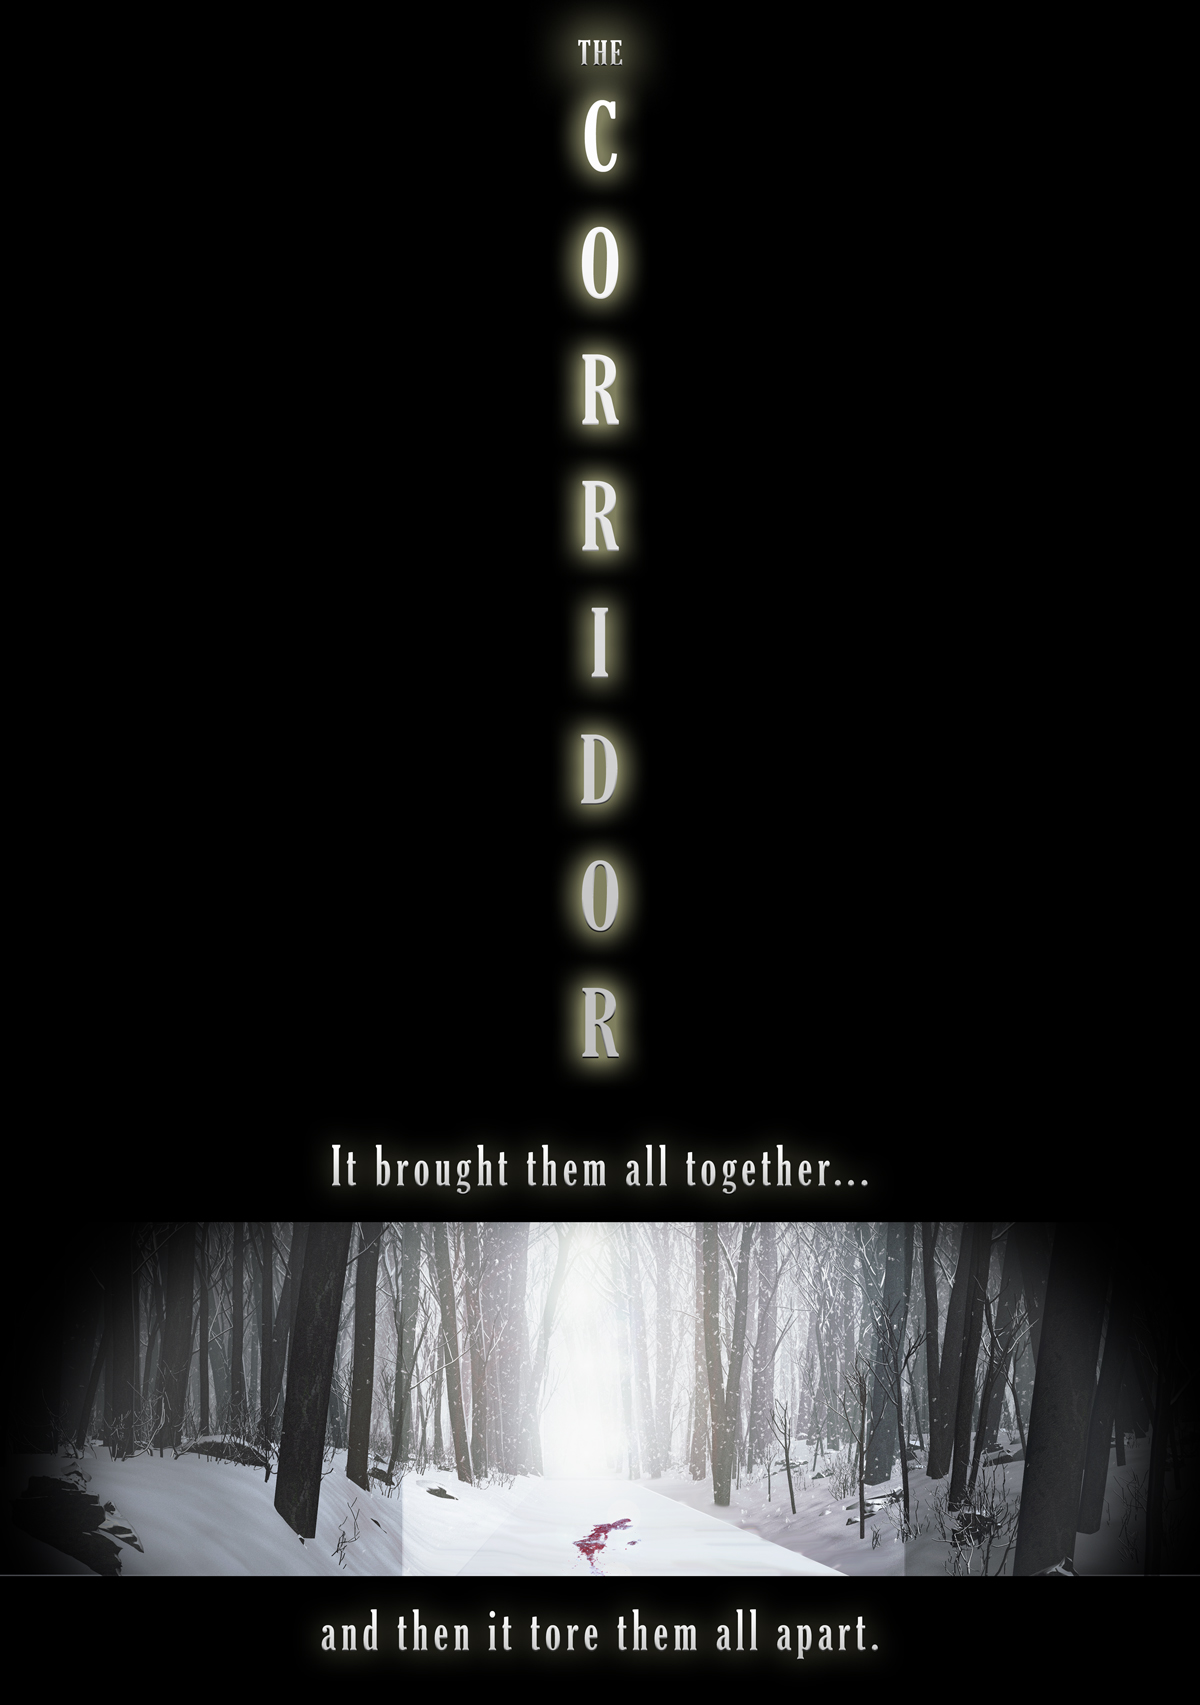 glenjm.files.wordpress.com_2010_02_the-corridor-one-sheet